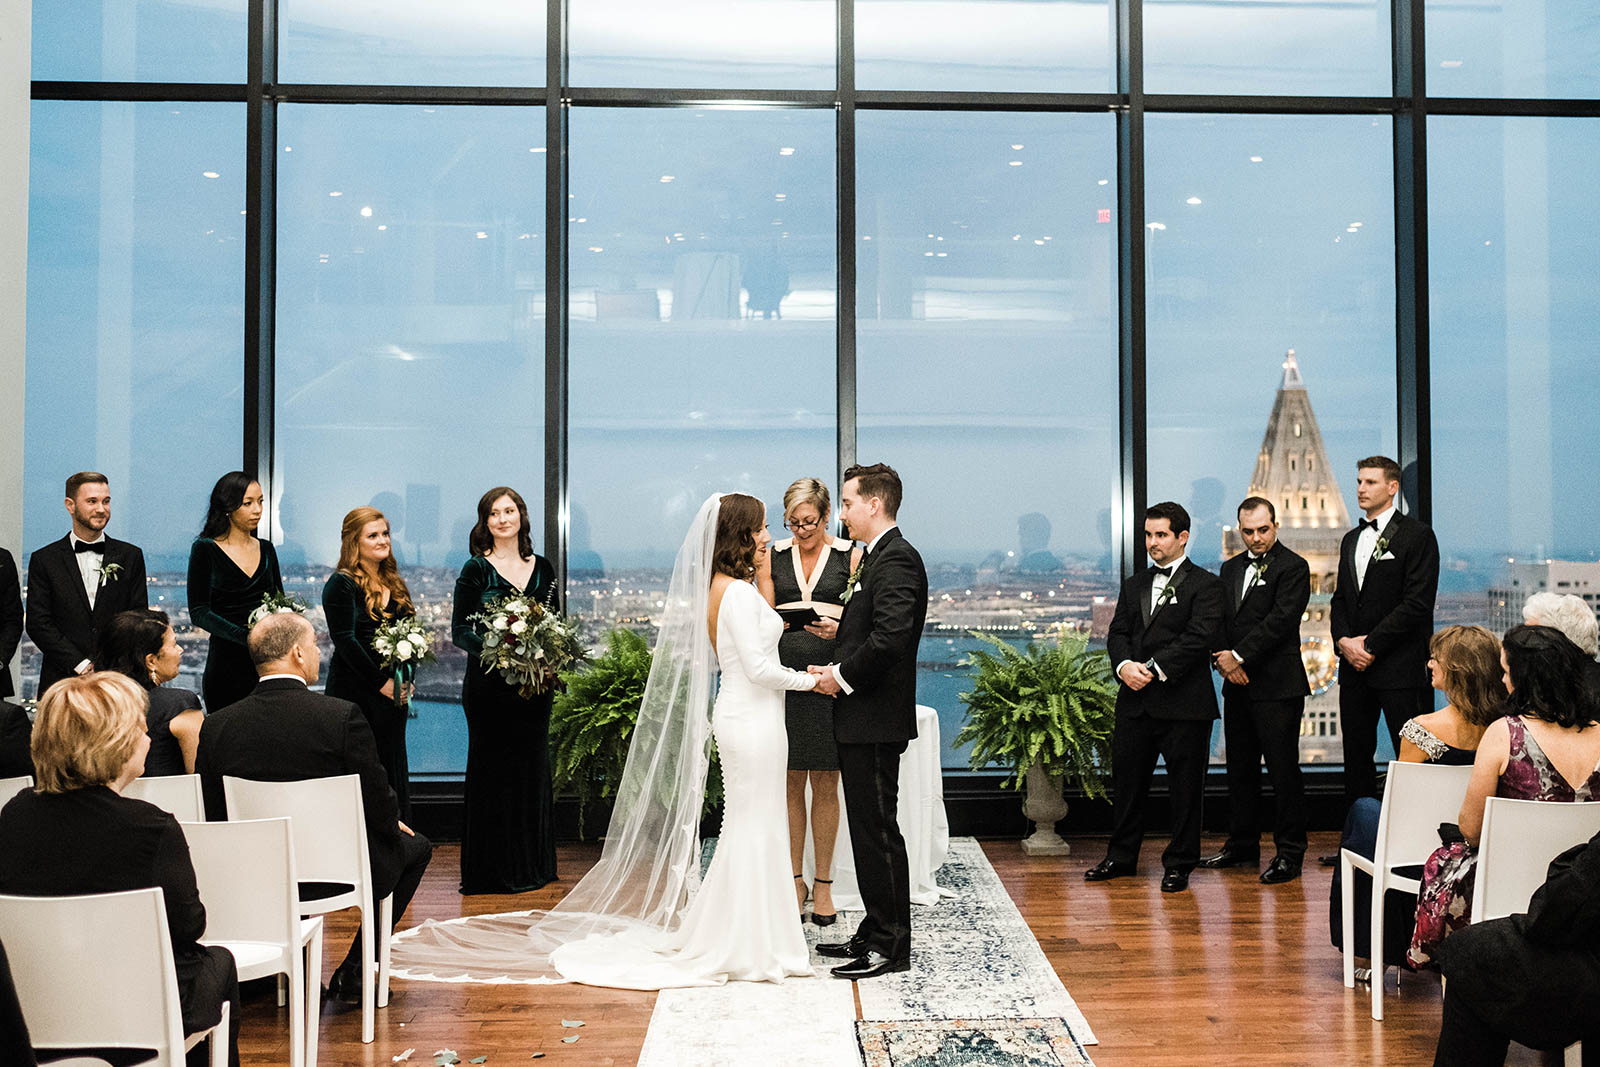 Wedding_Erica_Richie_2018-59.jpg